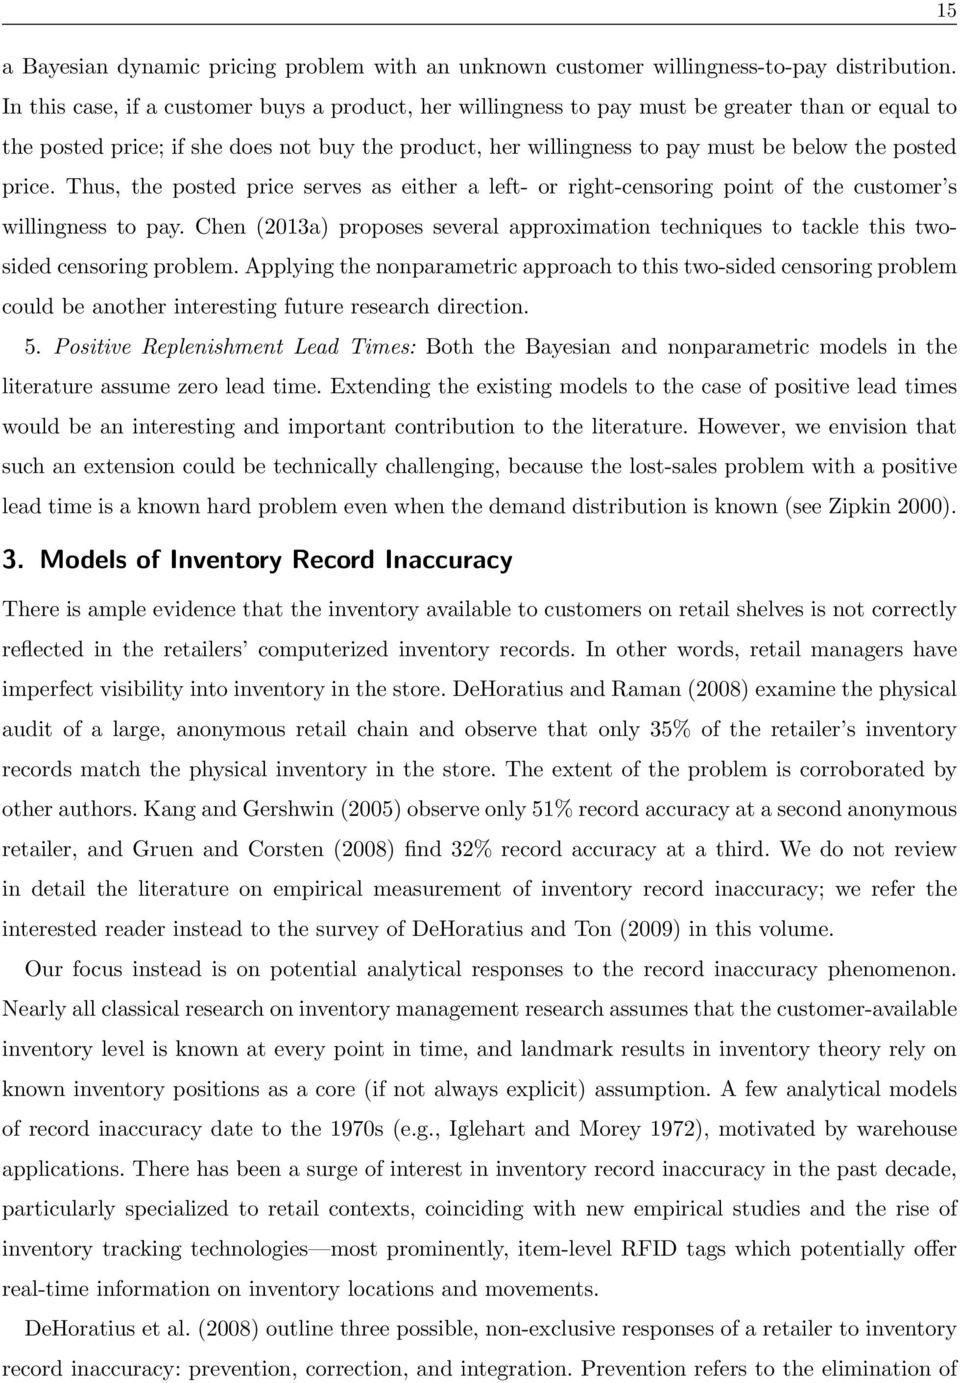 price. Thus, the posted price serves as either a left- or right-censoring point of the customer s willingness to pay.